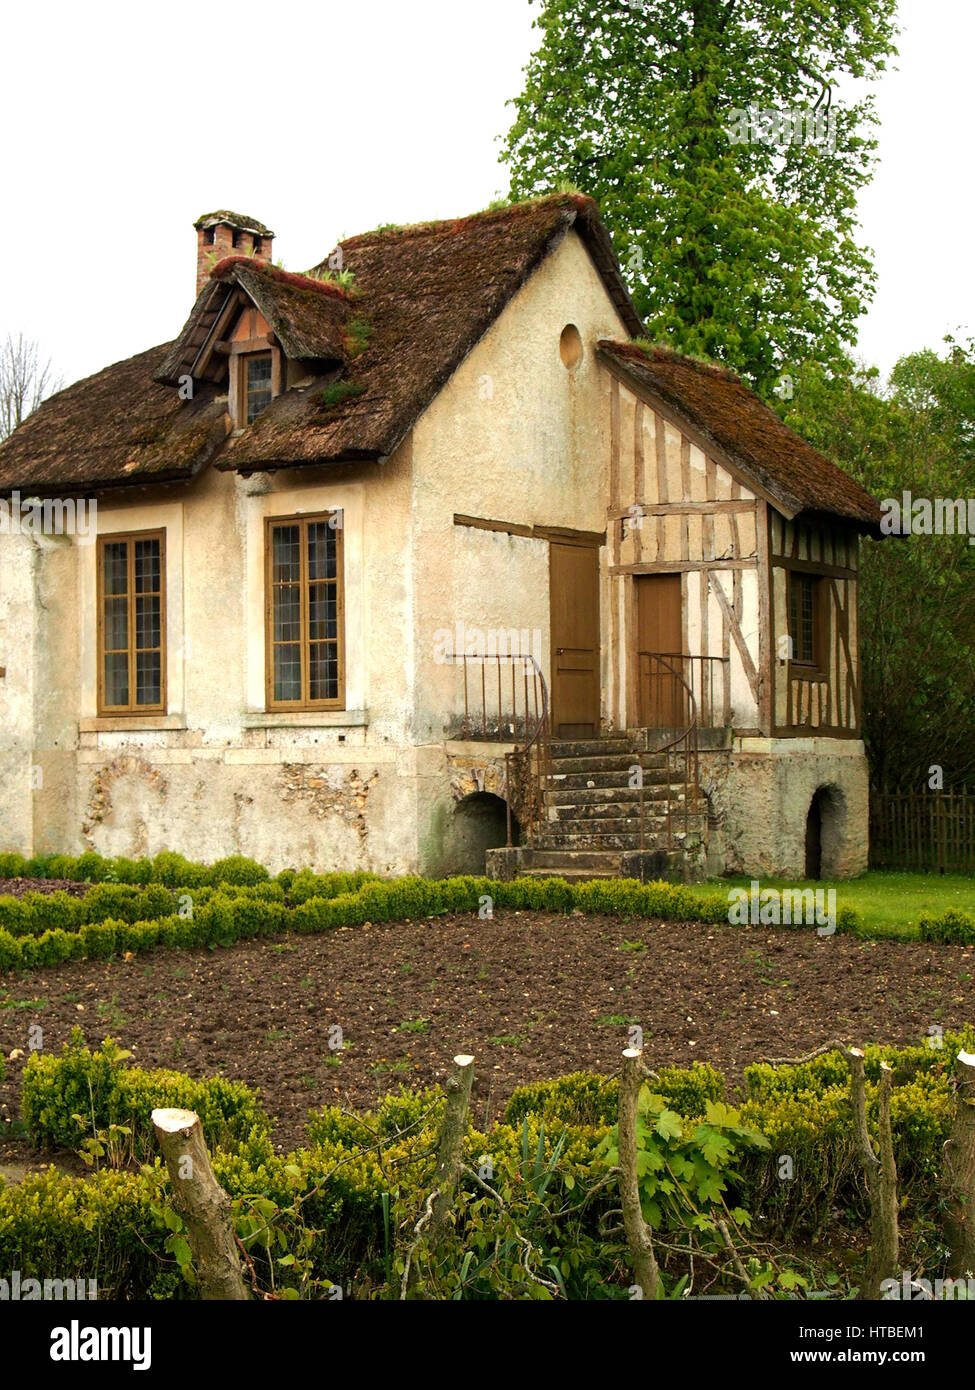 French country cottage stock photos french country for Small french country cottage